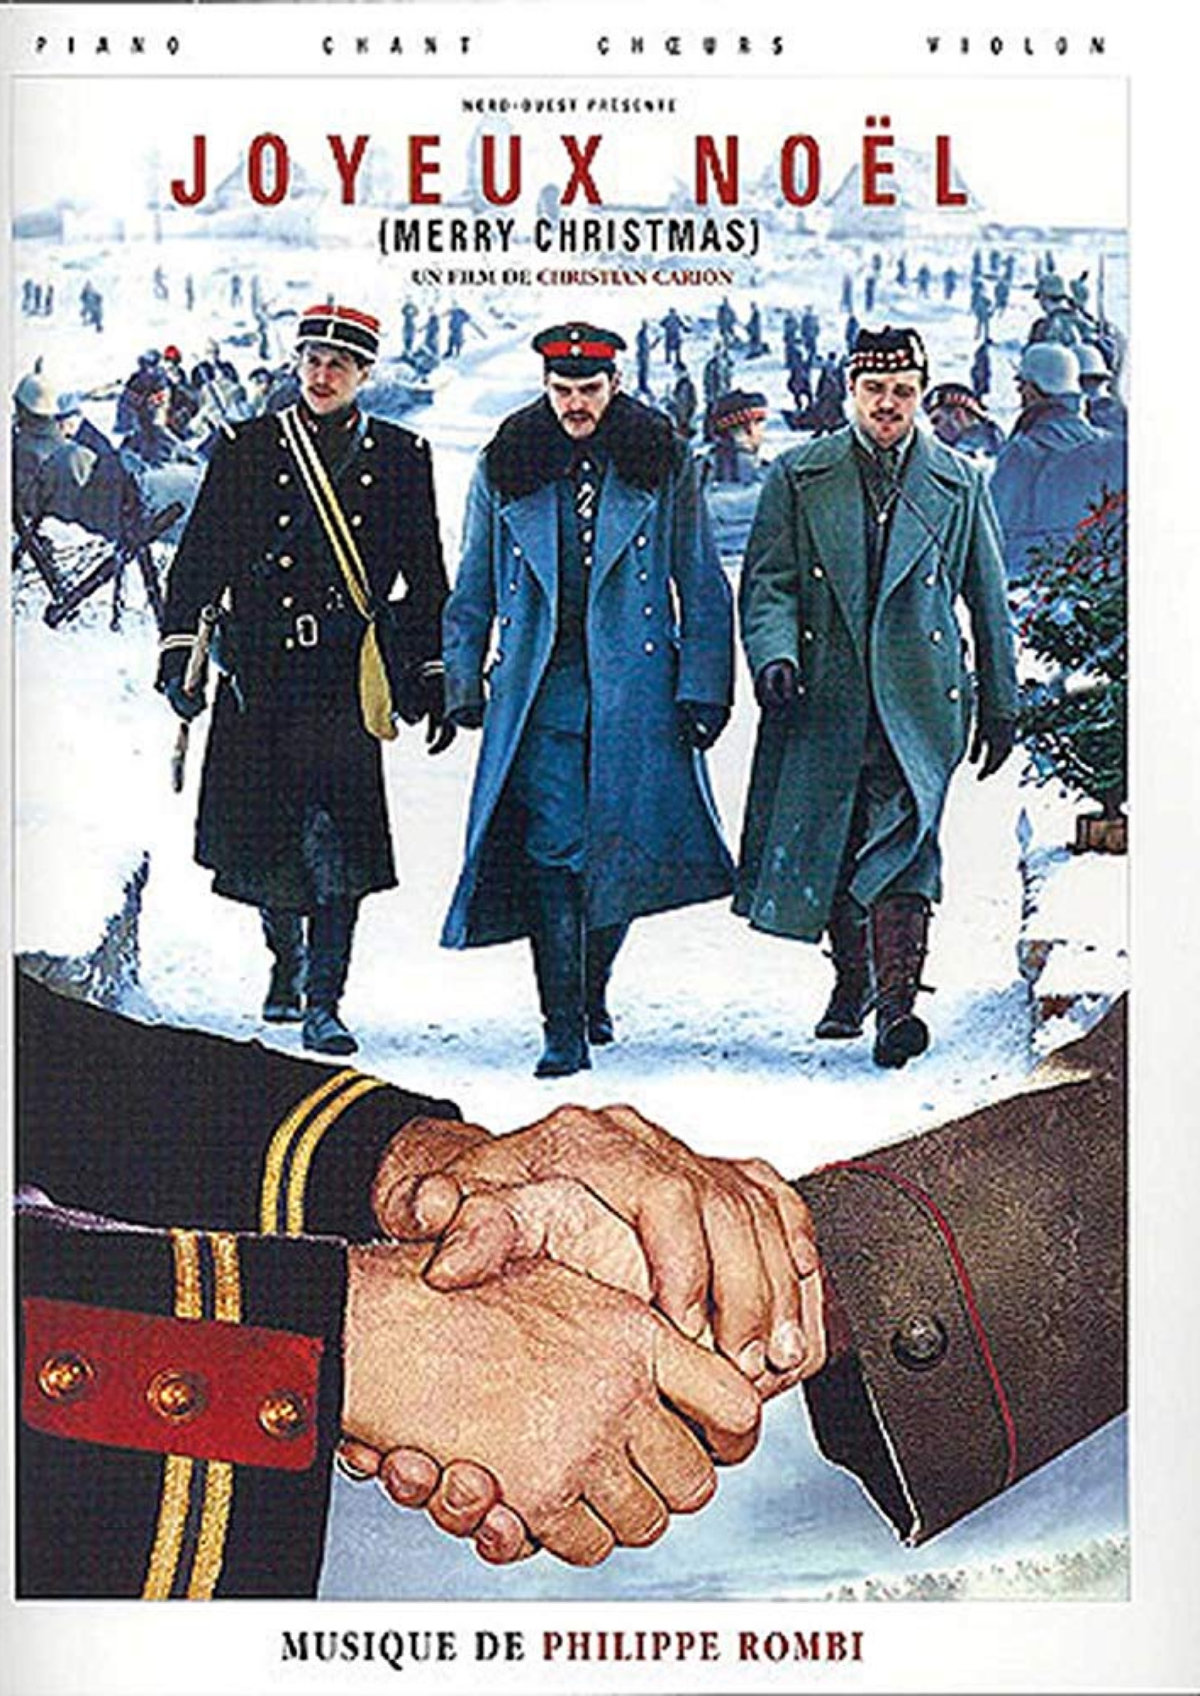 'Merry Christmas (Joyeux Noel)' movie poster